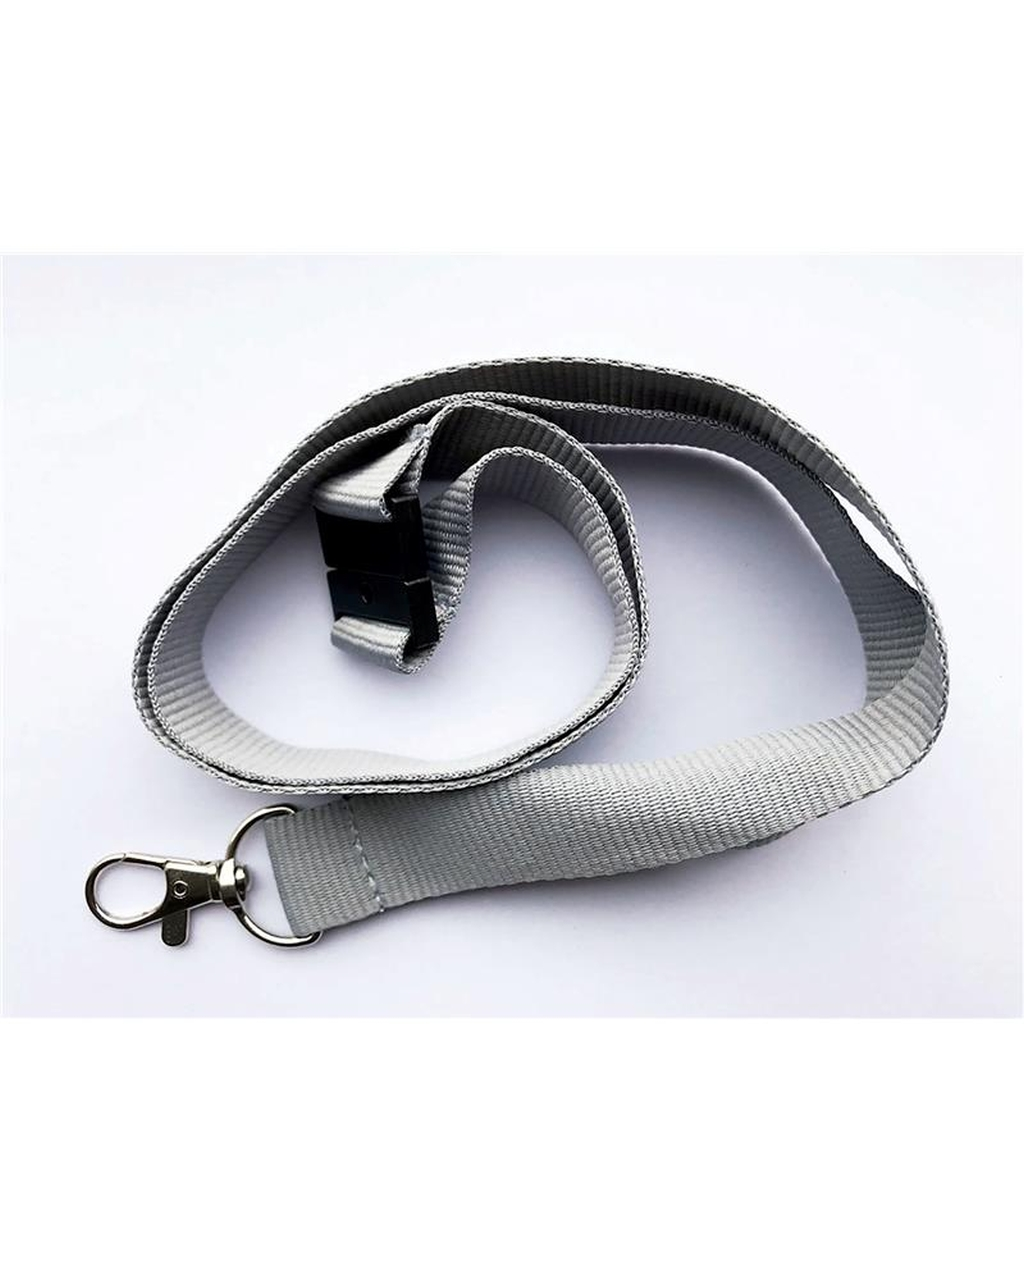 20Mm Lanyards Plain Greypack Of 100